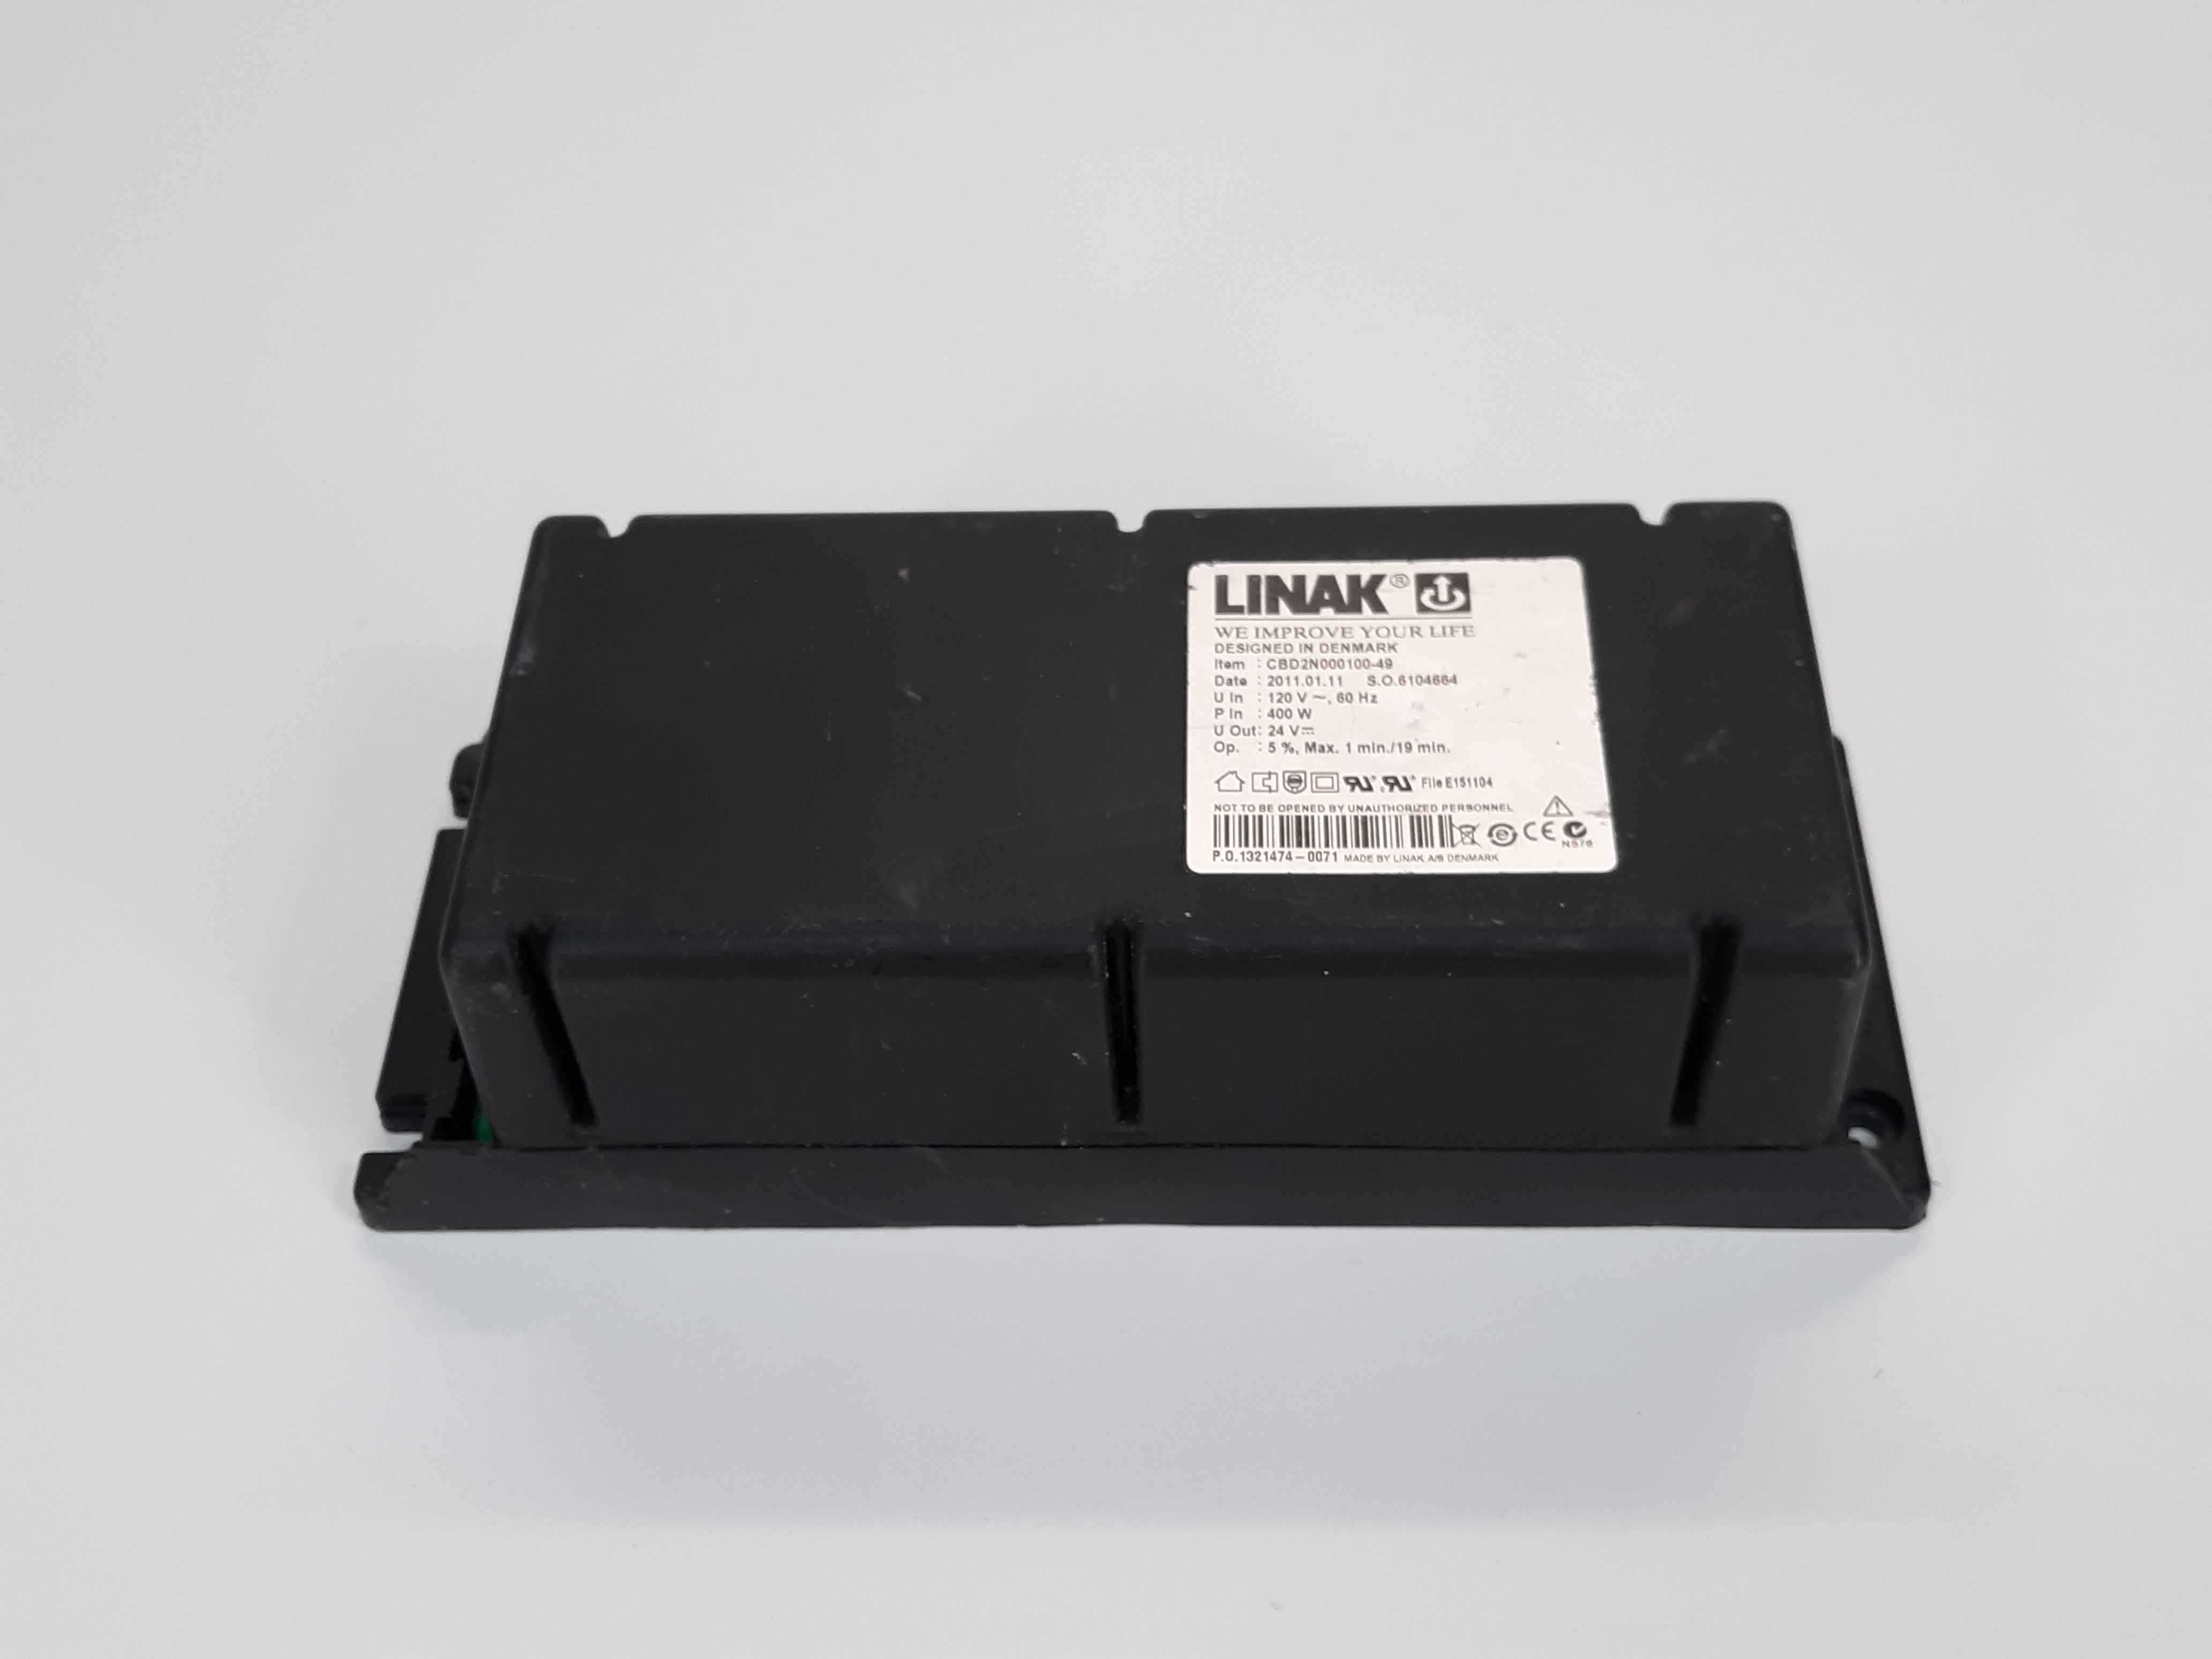 Linak CBD2N000100-49 Linear Actuator Push 1000 N IP51 device unit